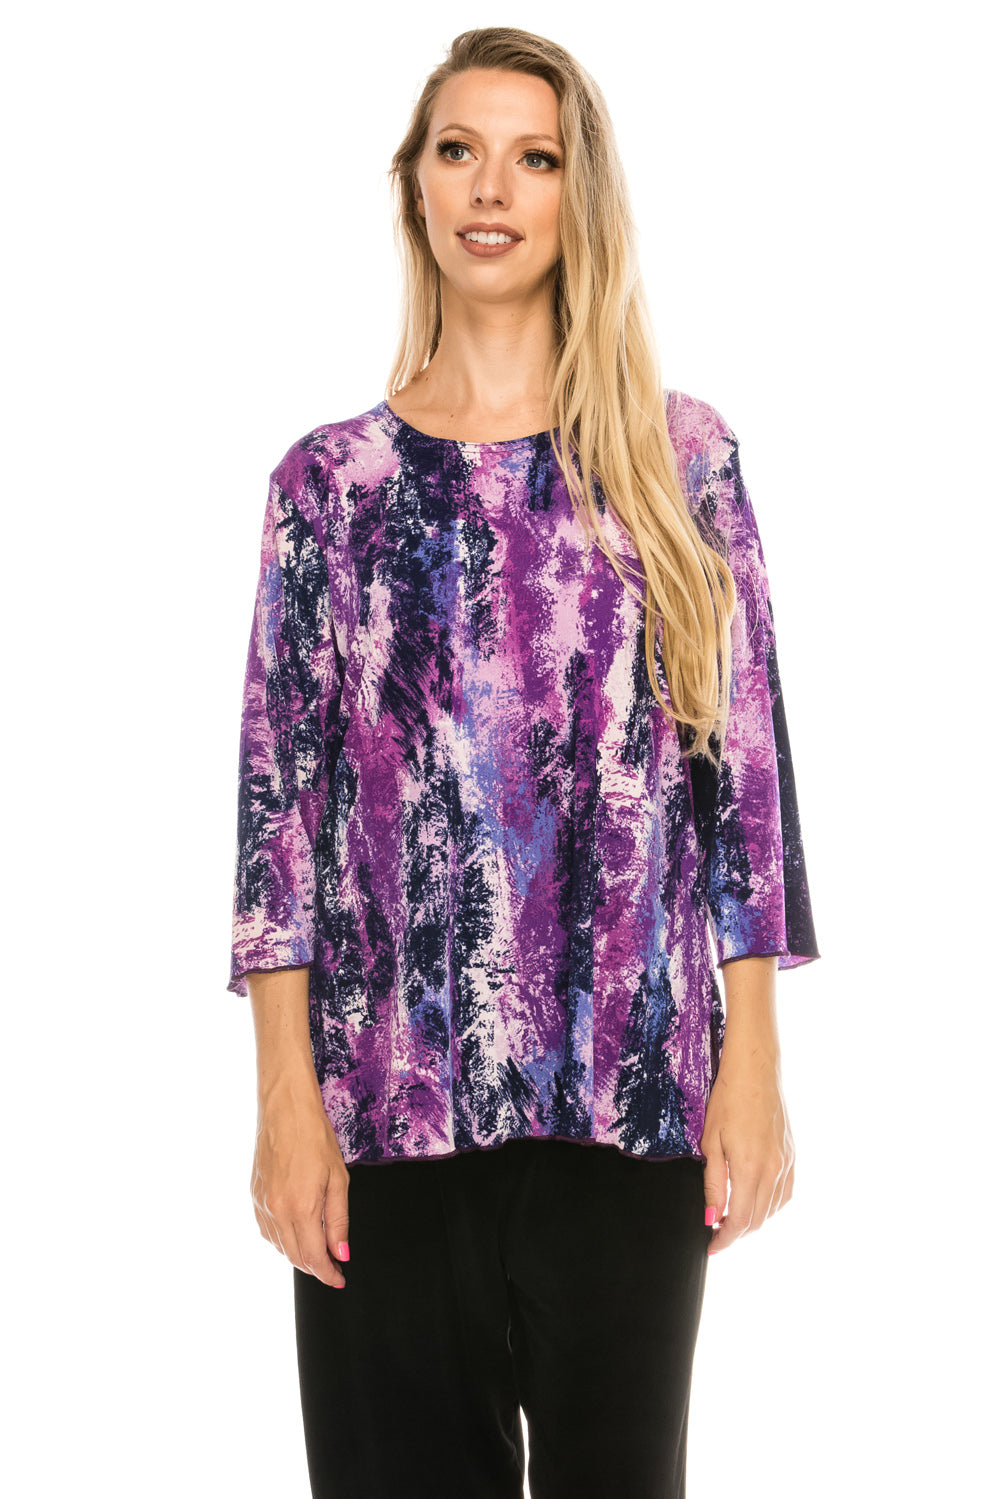 Jostar Women's Stretchy Merrow Top 3/4 Sleeve Print Plus, 158BN-QXP-W170 - Jostar Online